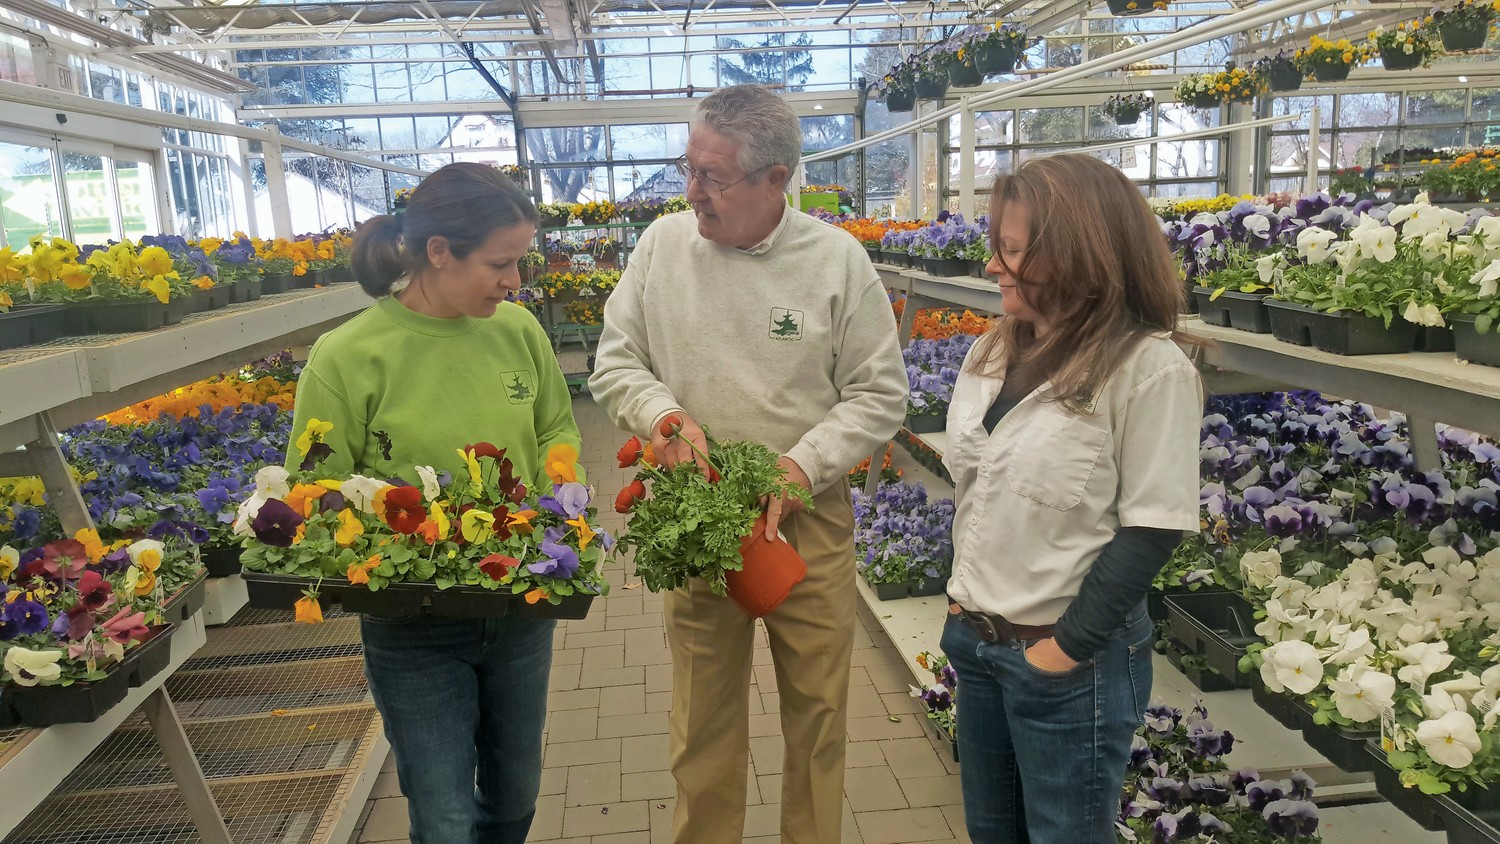 Atlantic Nursery owners in Freeport, Leeanne Kraus, 38, Sigurd Feile, 73 and Christine Feile, 42 marveled and talked about the pansies and other flowers that held up through the last four winter storms in the last month and a half.